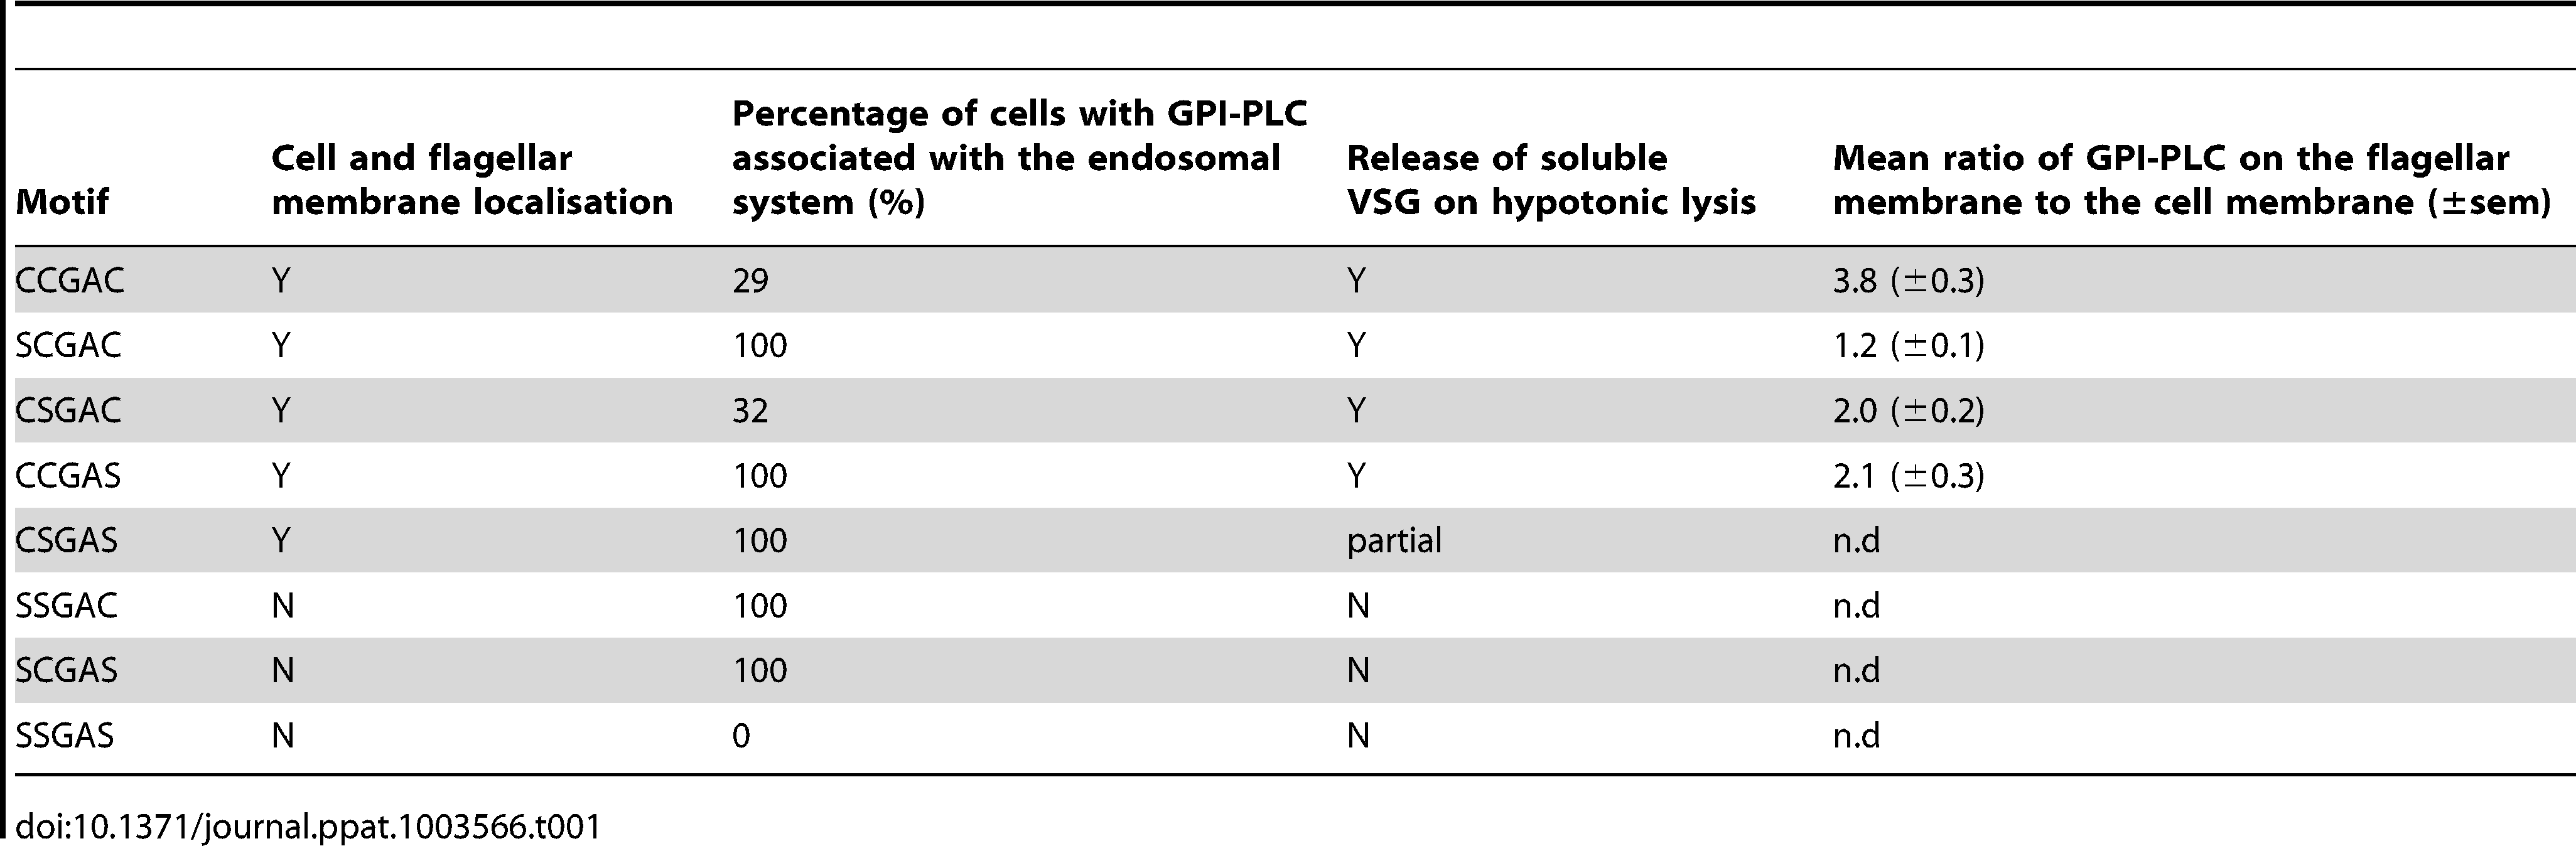 Summary of subcellular localisation and GPI-anchor hydrolysis for wild type and mutant GPI-PLC (n.d - no data).